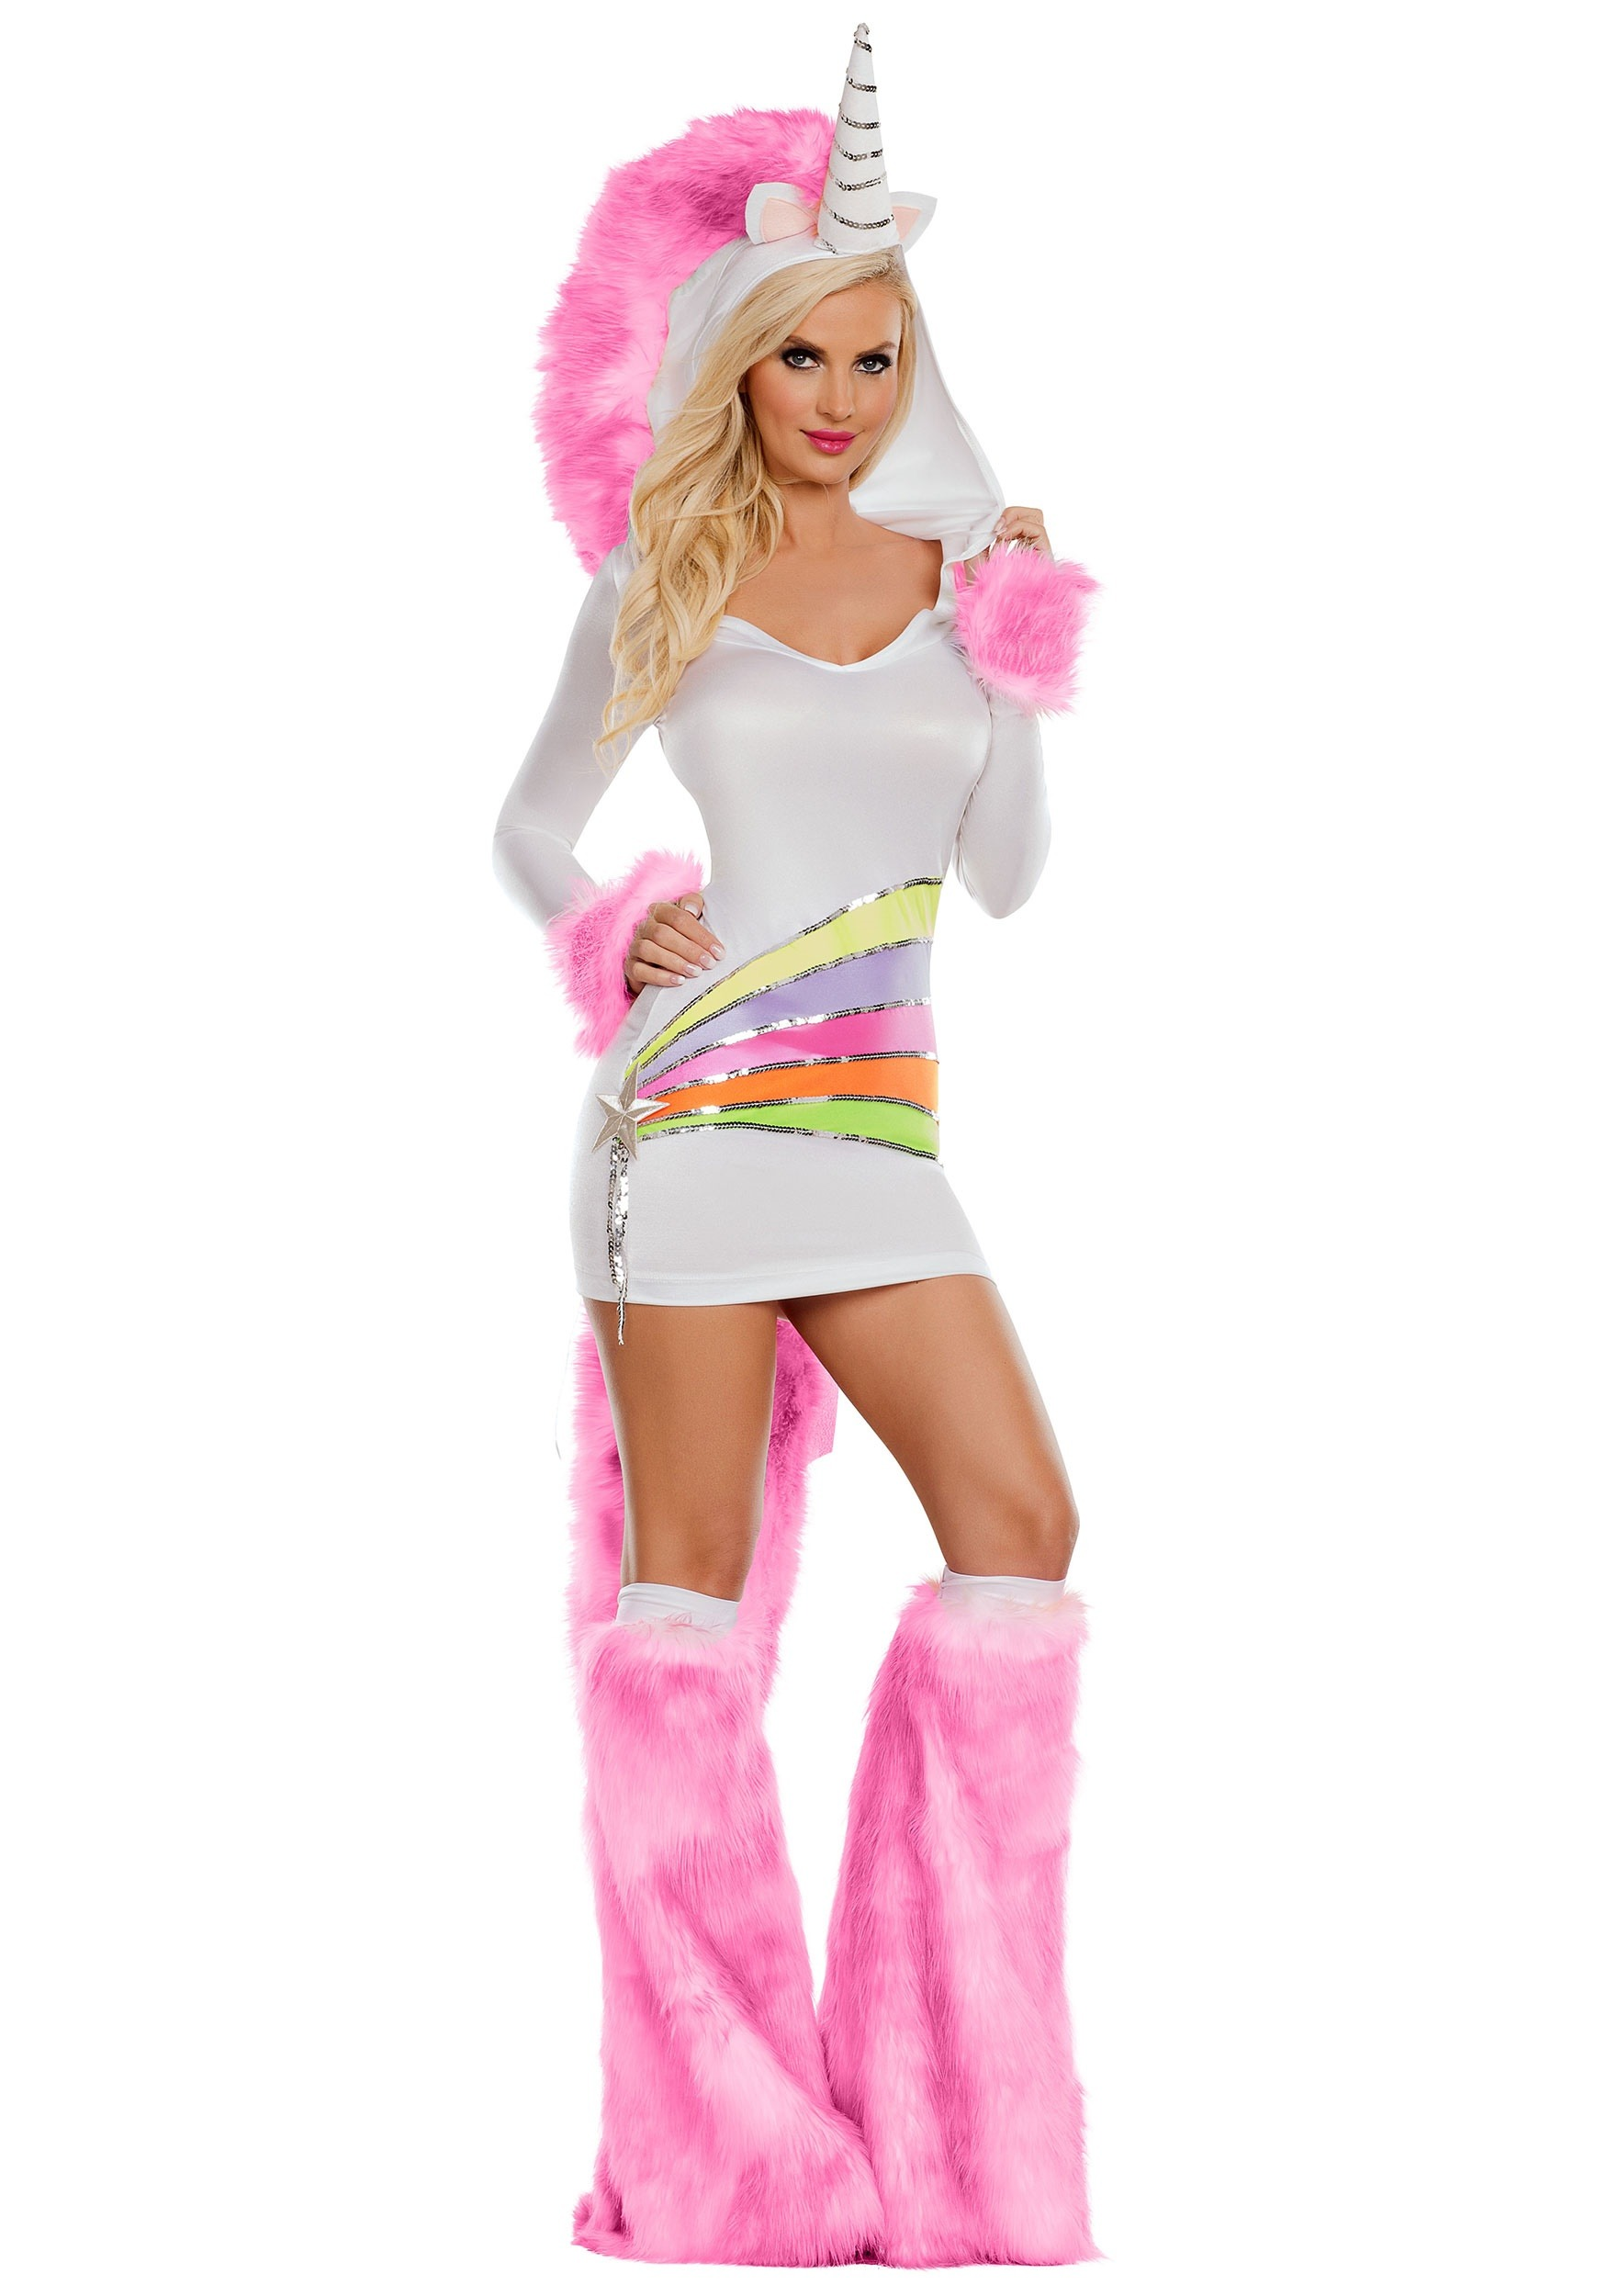 Adult erotic pony costume